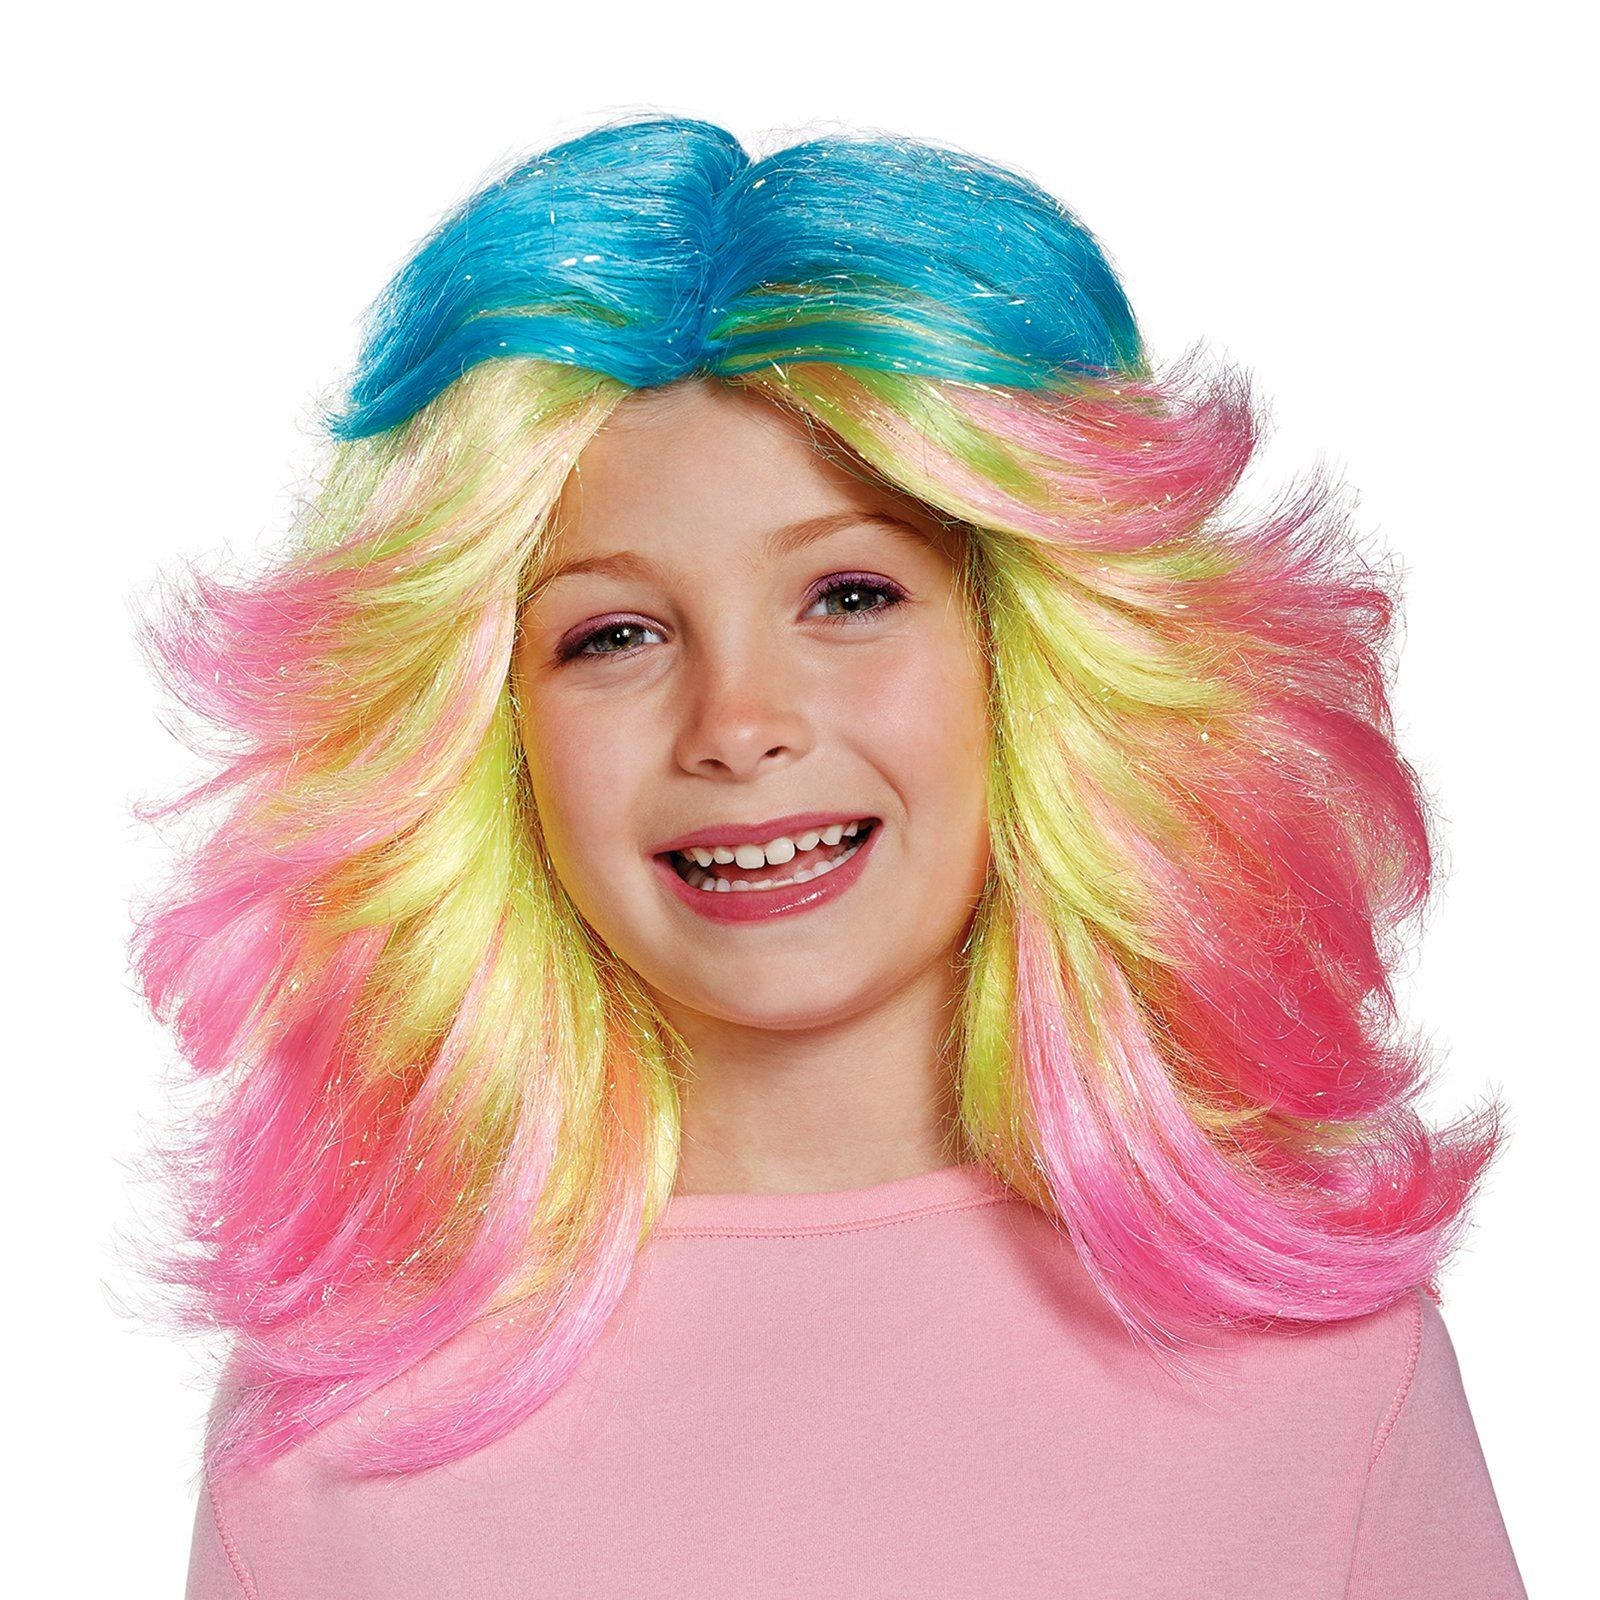 Trolls- Lady Glitter Sparkles Child Wig from Buycostumes.com  sc 1 st  Pinterest & Trolls- Lady Glitter Sparkles Child Wig from Buycostumes.com ...